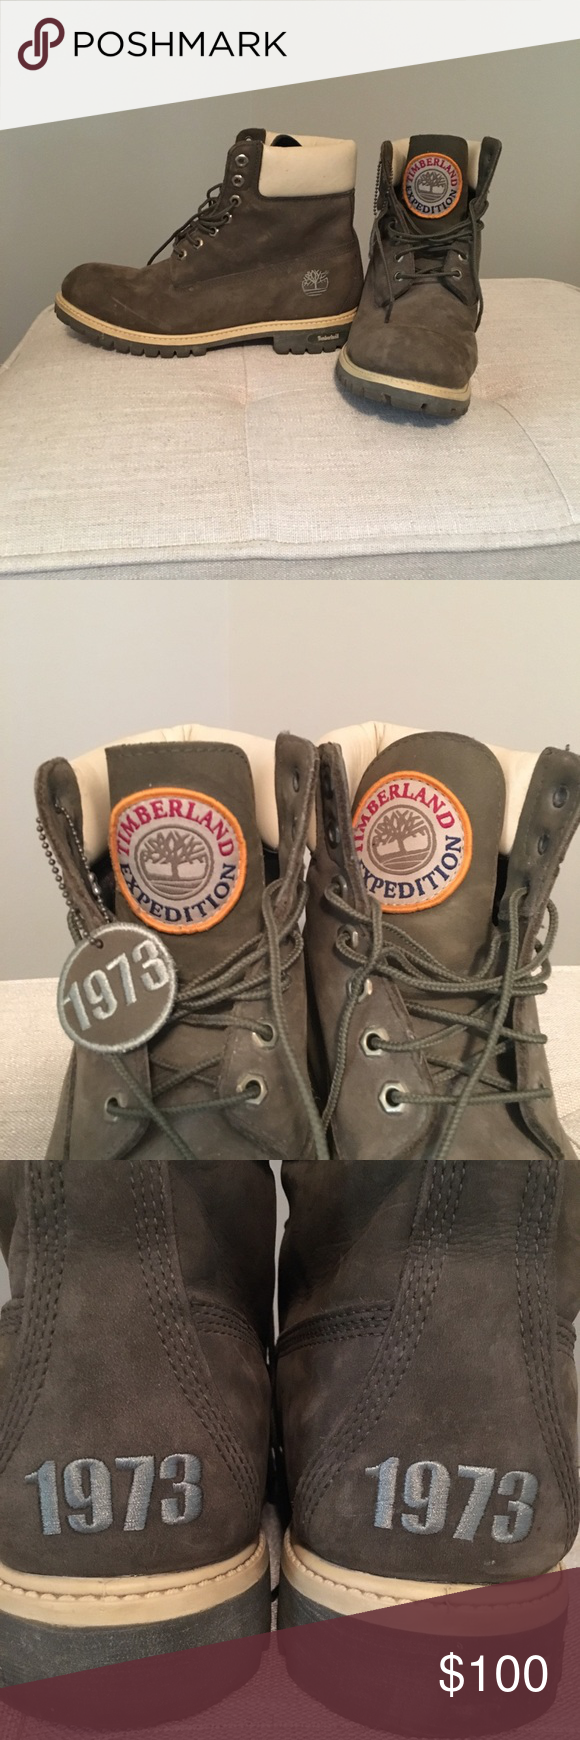 RARE Timberland Expedition Boots Olive green Timberland